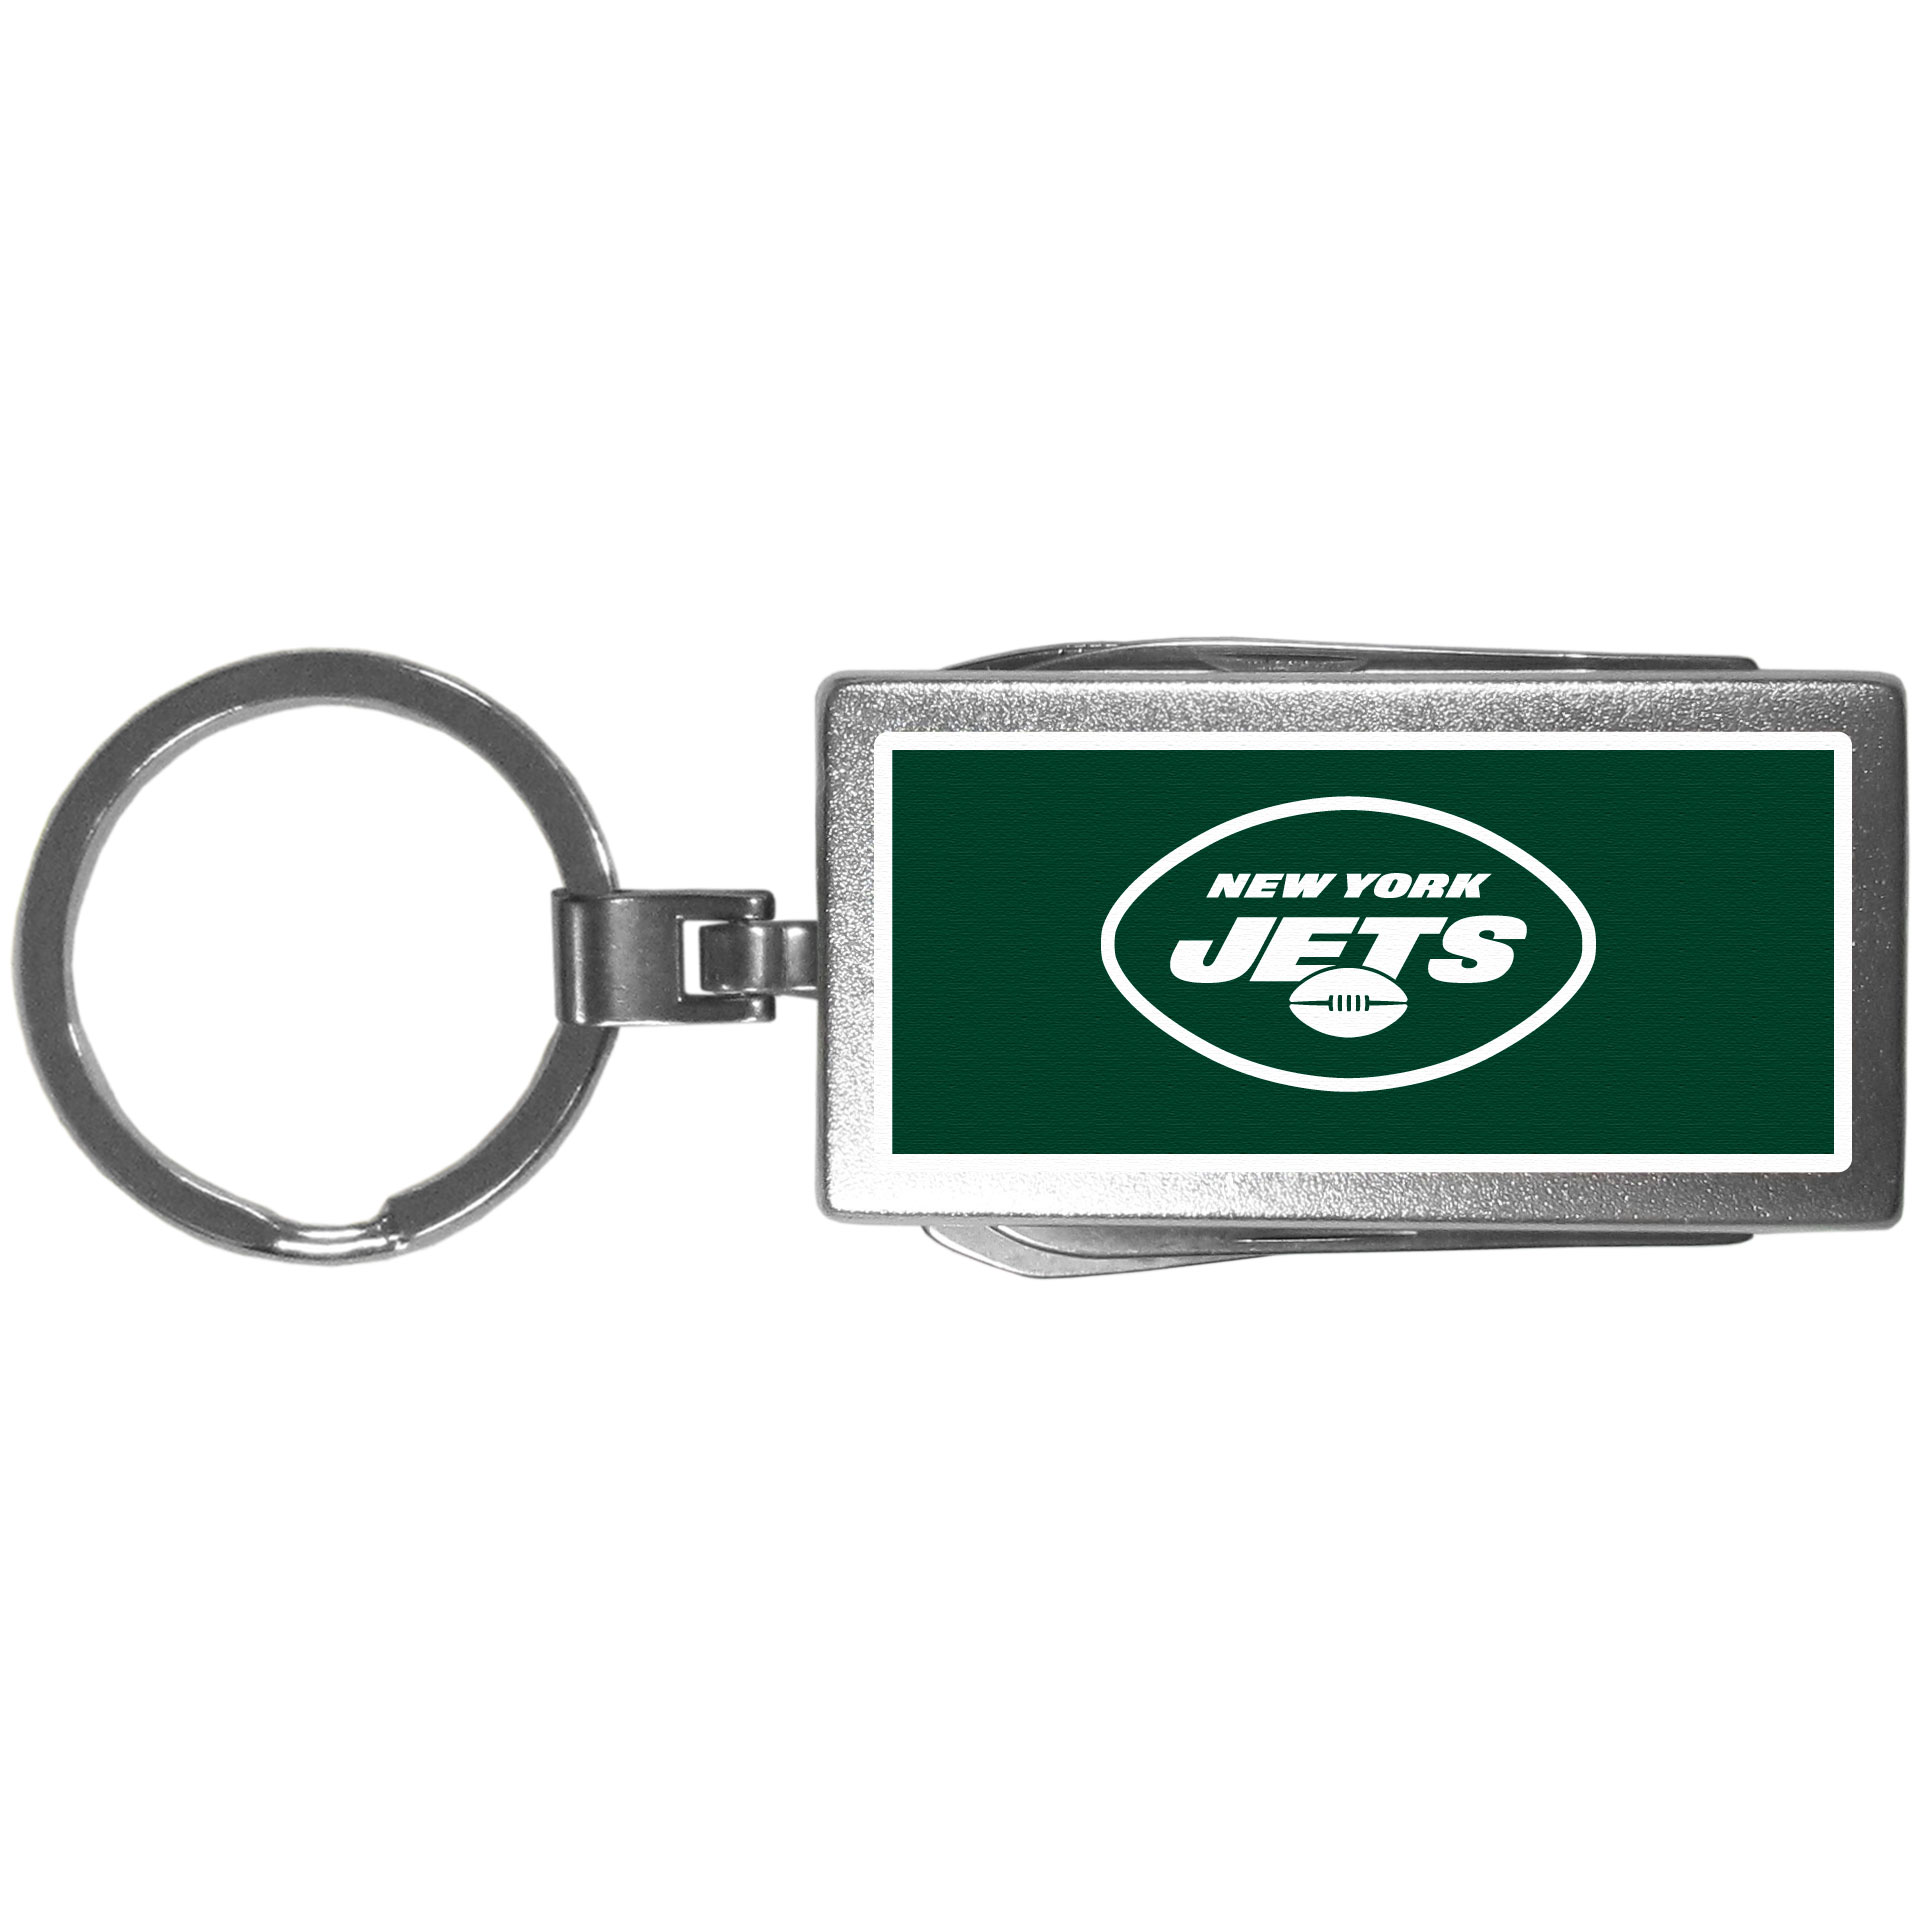 New York Jets Multi-tool Key Chain, Logo - Be the hero at the tailgate, camping, or on a Friday night with your New York Jets Multi-Tool Keychain which comes complete with bottle opener, scissors, knife, nail file and screw driver. Be it opening a package or a beverage Siskiyou's Multi-Tool Keychain goes wherever your keys do. The keychain hangs at 4 inches long when closed.